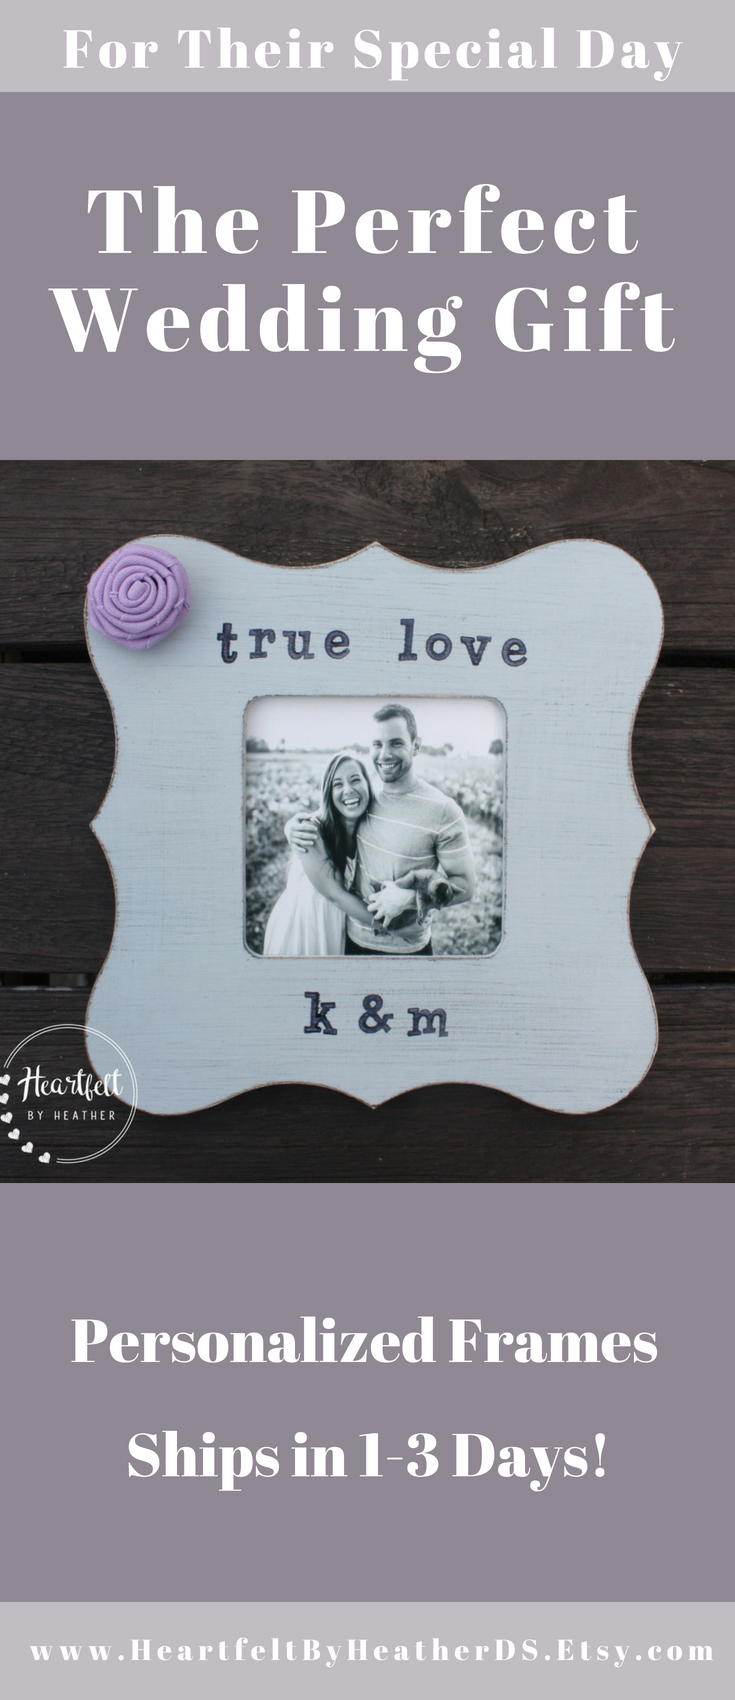 Personalized True Love Wood Picture Frame Bridal Shower Gift Unique Wedding Gifts For Couple 5th Anniversary Gift For Her Engagement Personalized Wedding Picture Frame Wedding Gifts For Couples Unique Wedding Gifts